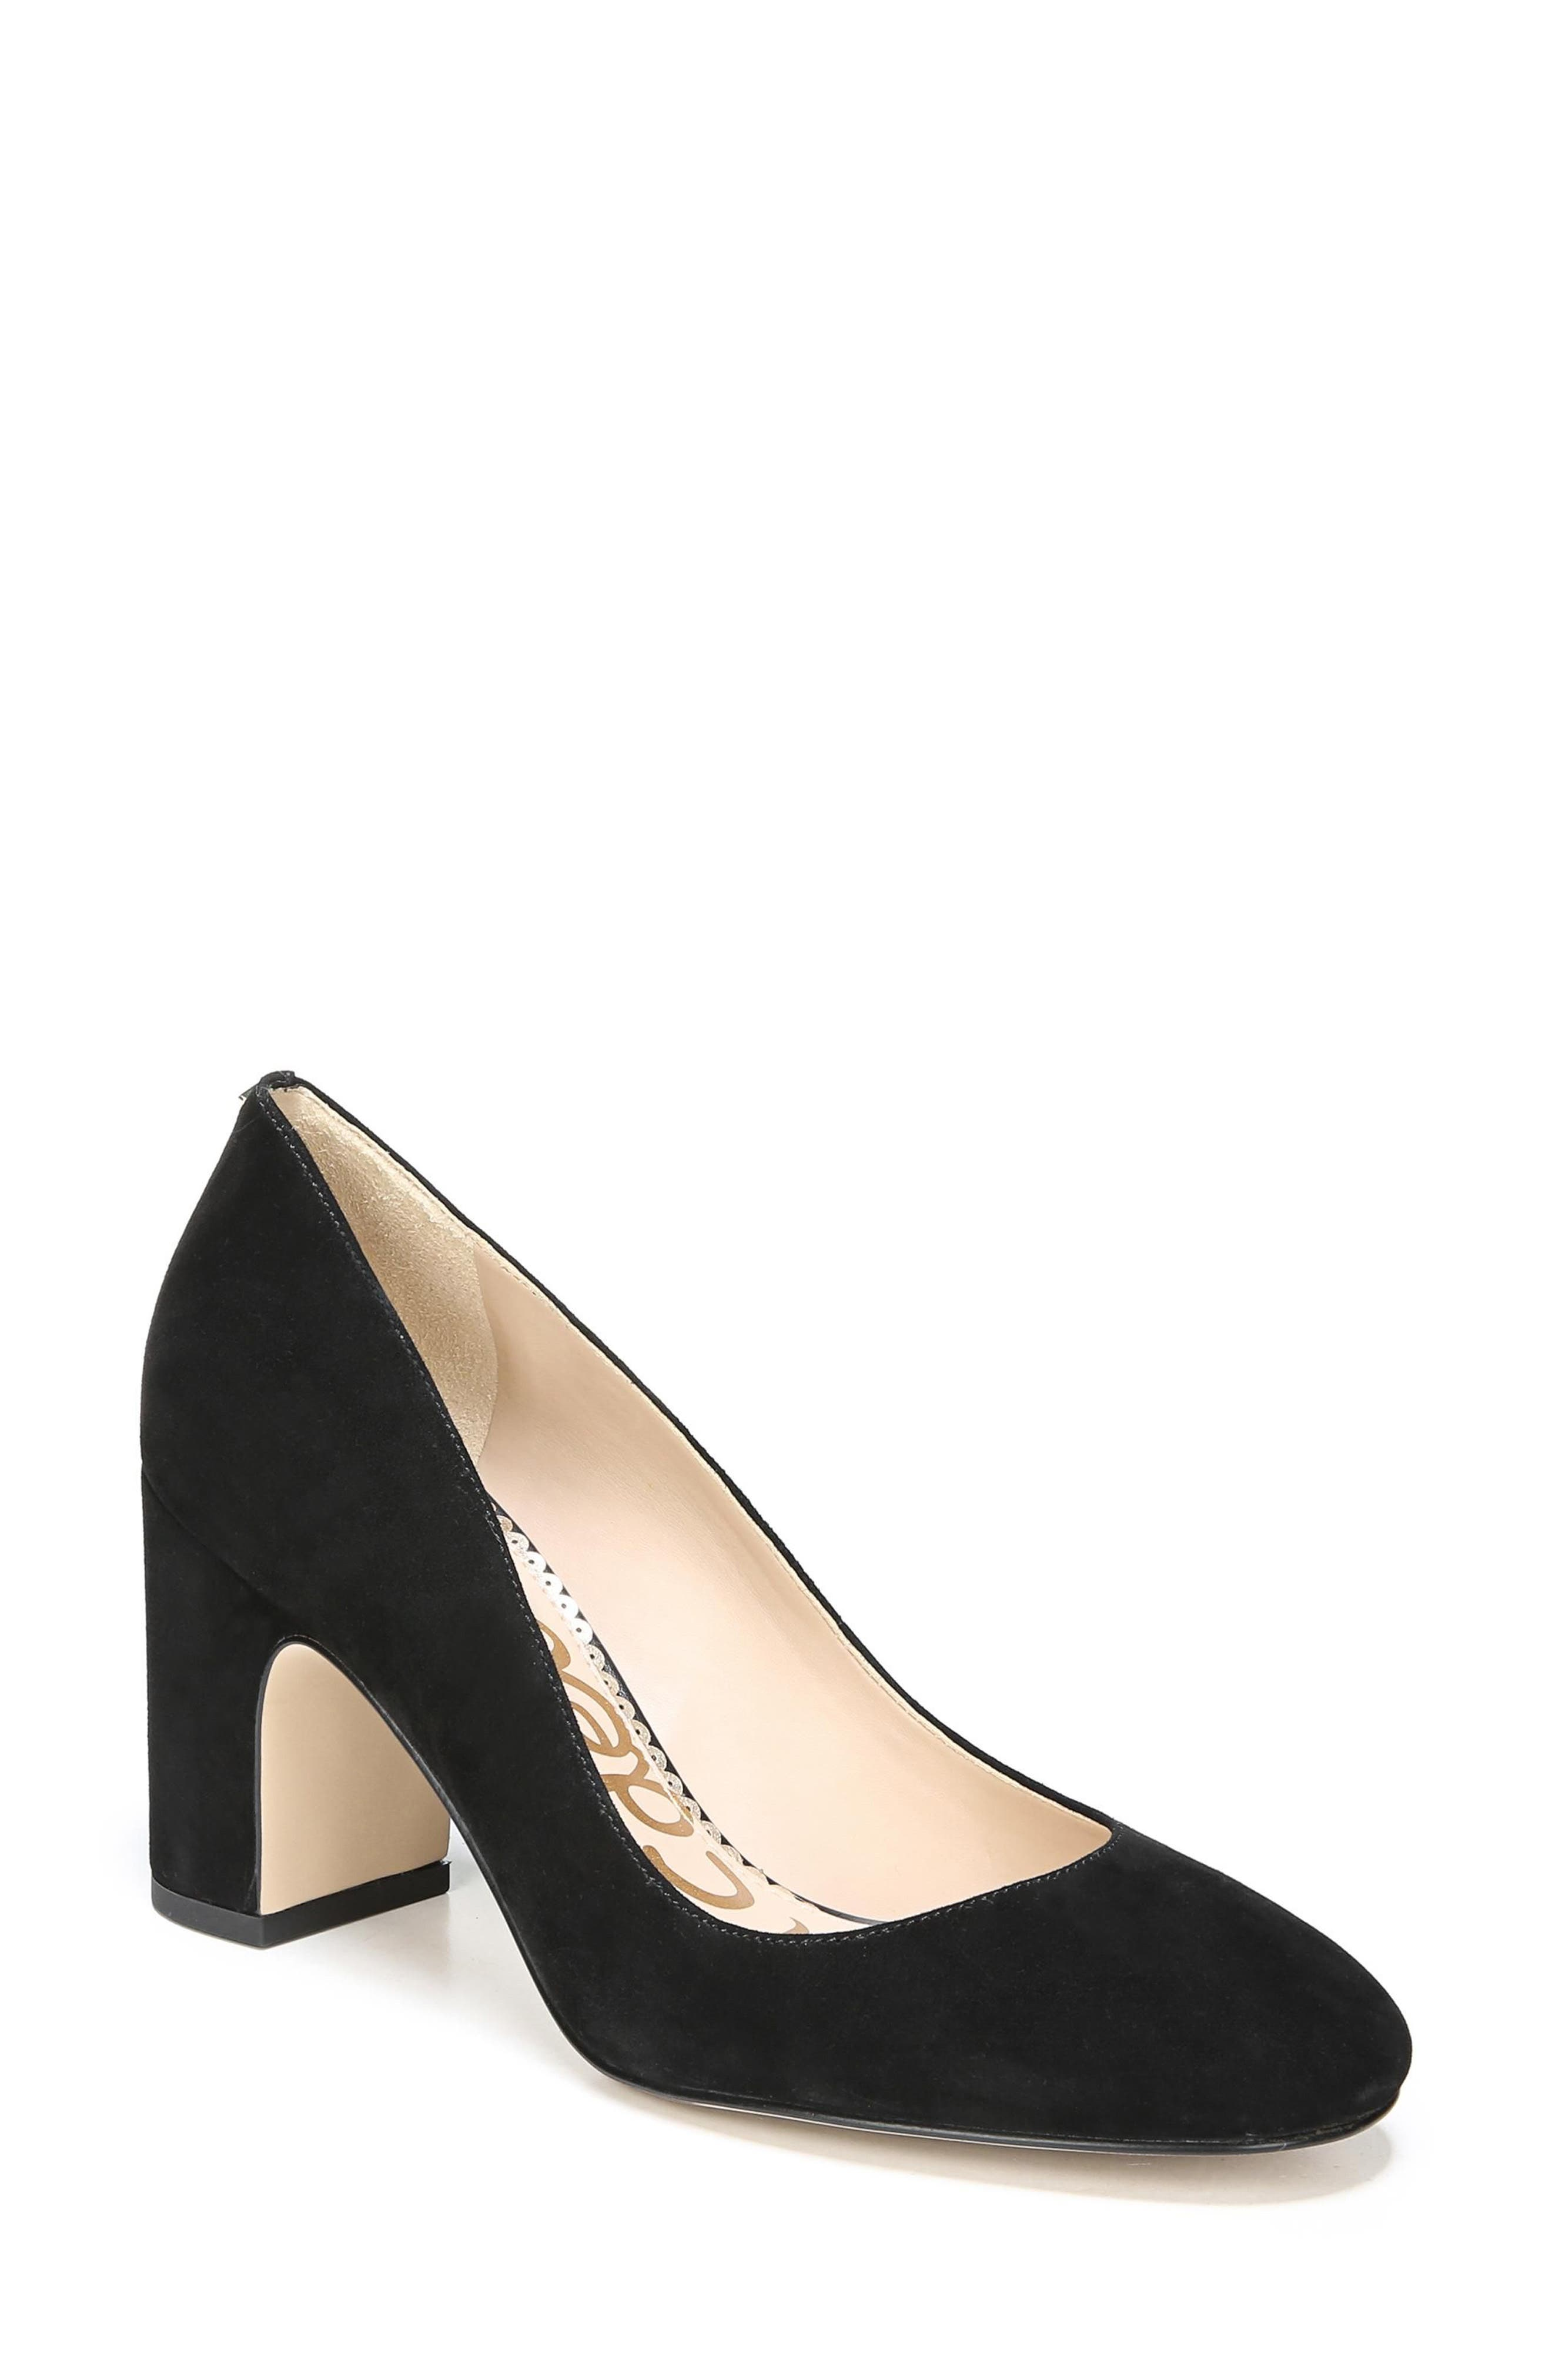 Junie Genuine Calf Hair Pump,                             Main thumbnail 1, color,                             001